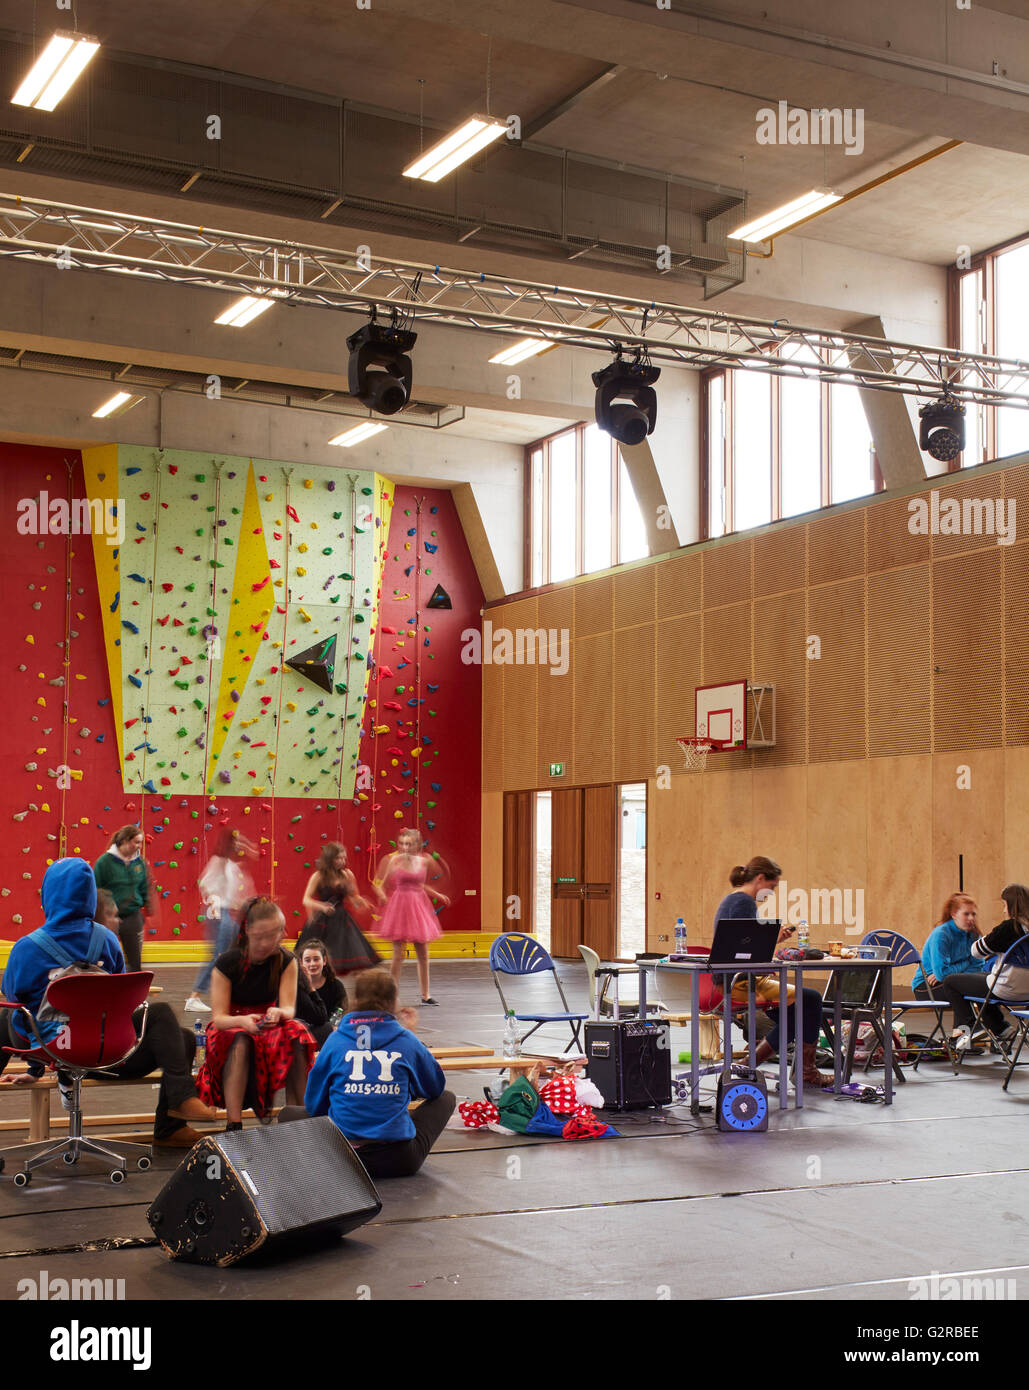 Sports hall during event rehearsal. St Angela's College Cork, Cork, Ireland. Architect: O'Donnell and Tuomey, - Stock Image